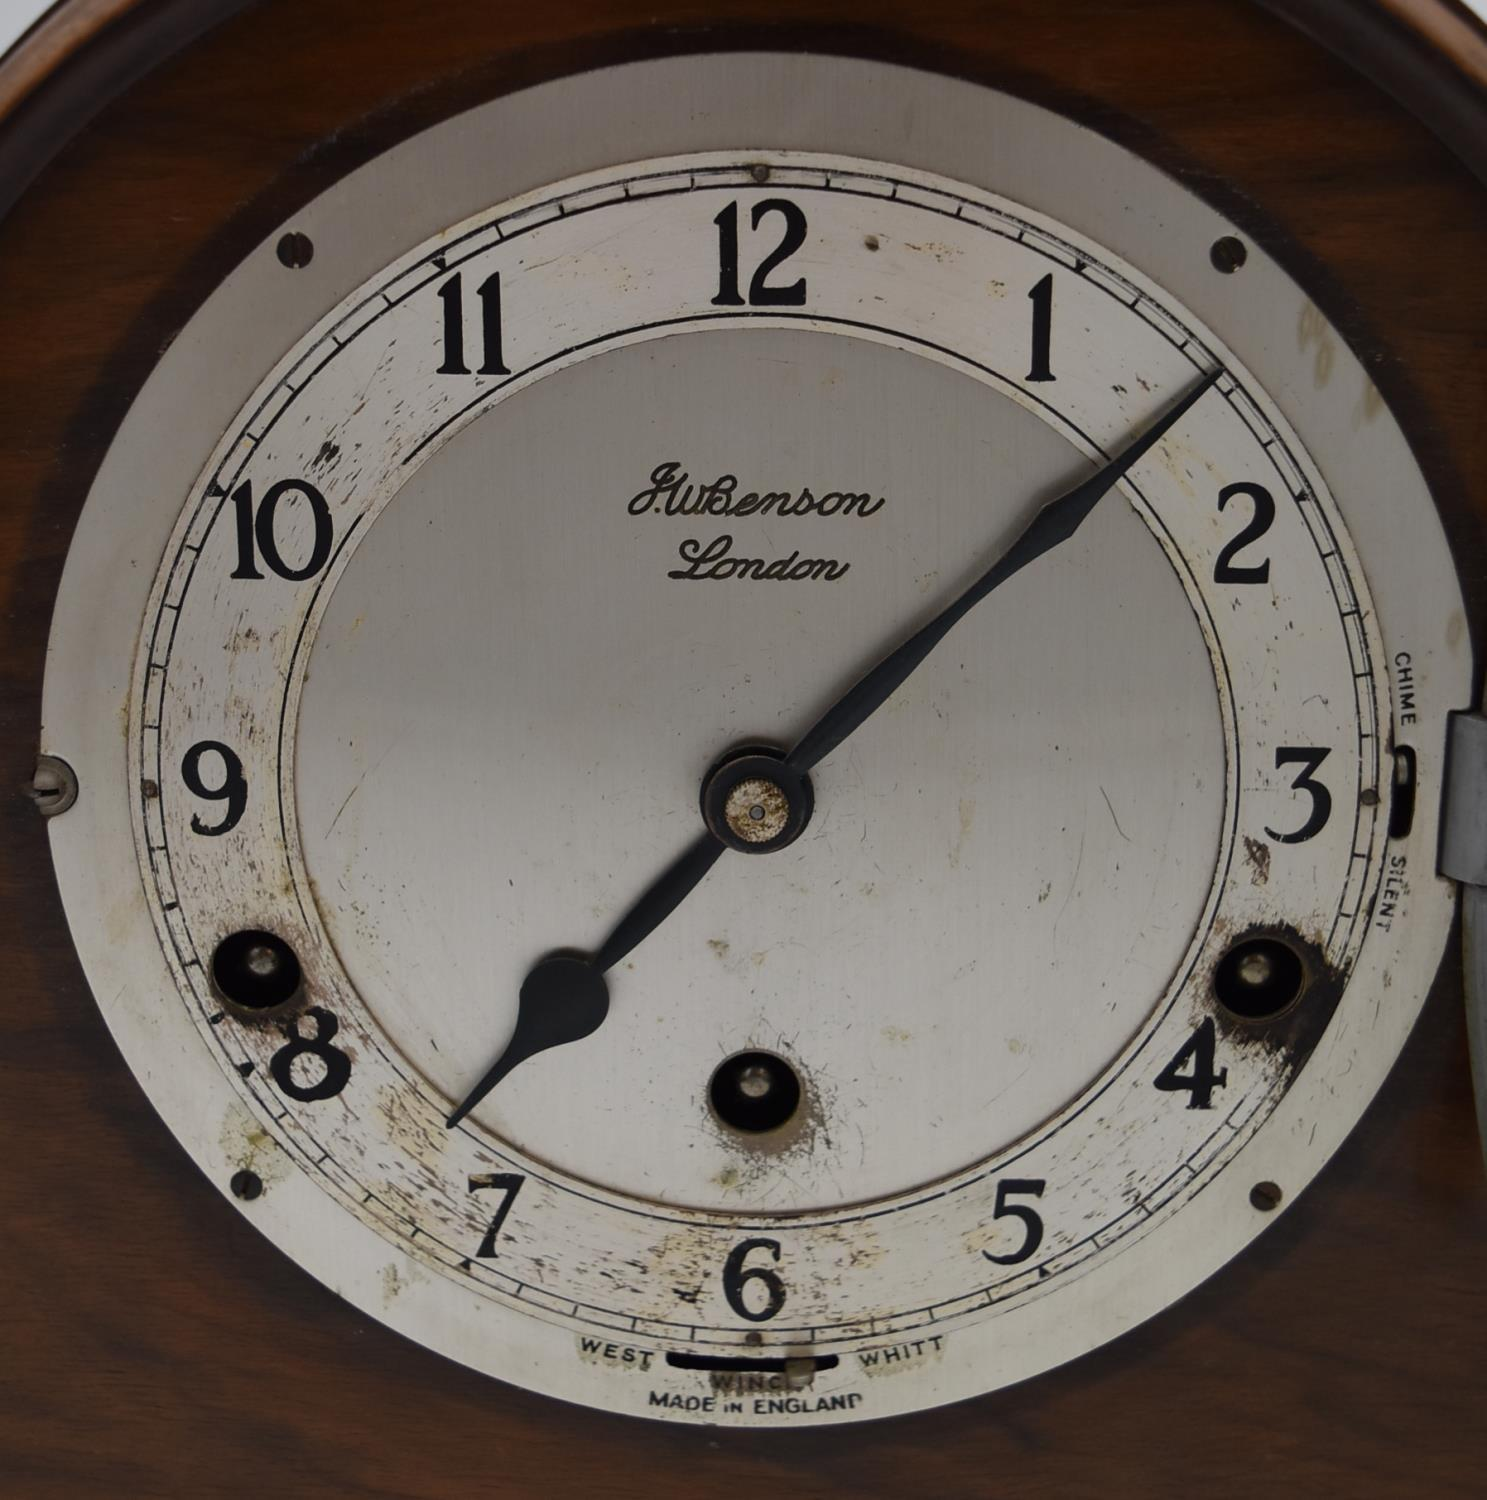 A miscellaneous collection of six mid 20th century mantel clocks. One by JW Benson of London. H. - Image 3 of 6